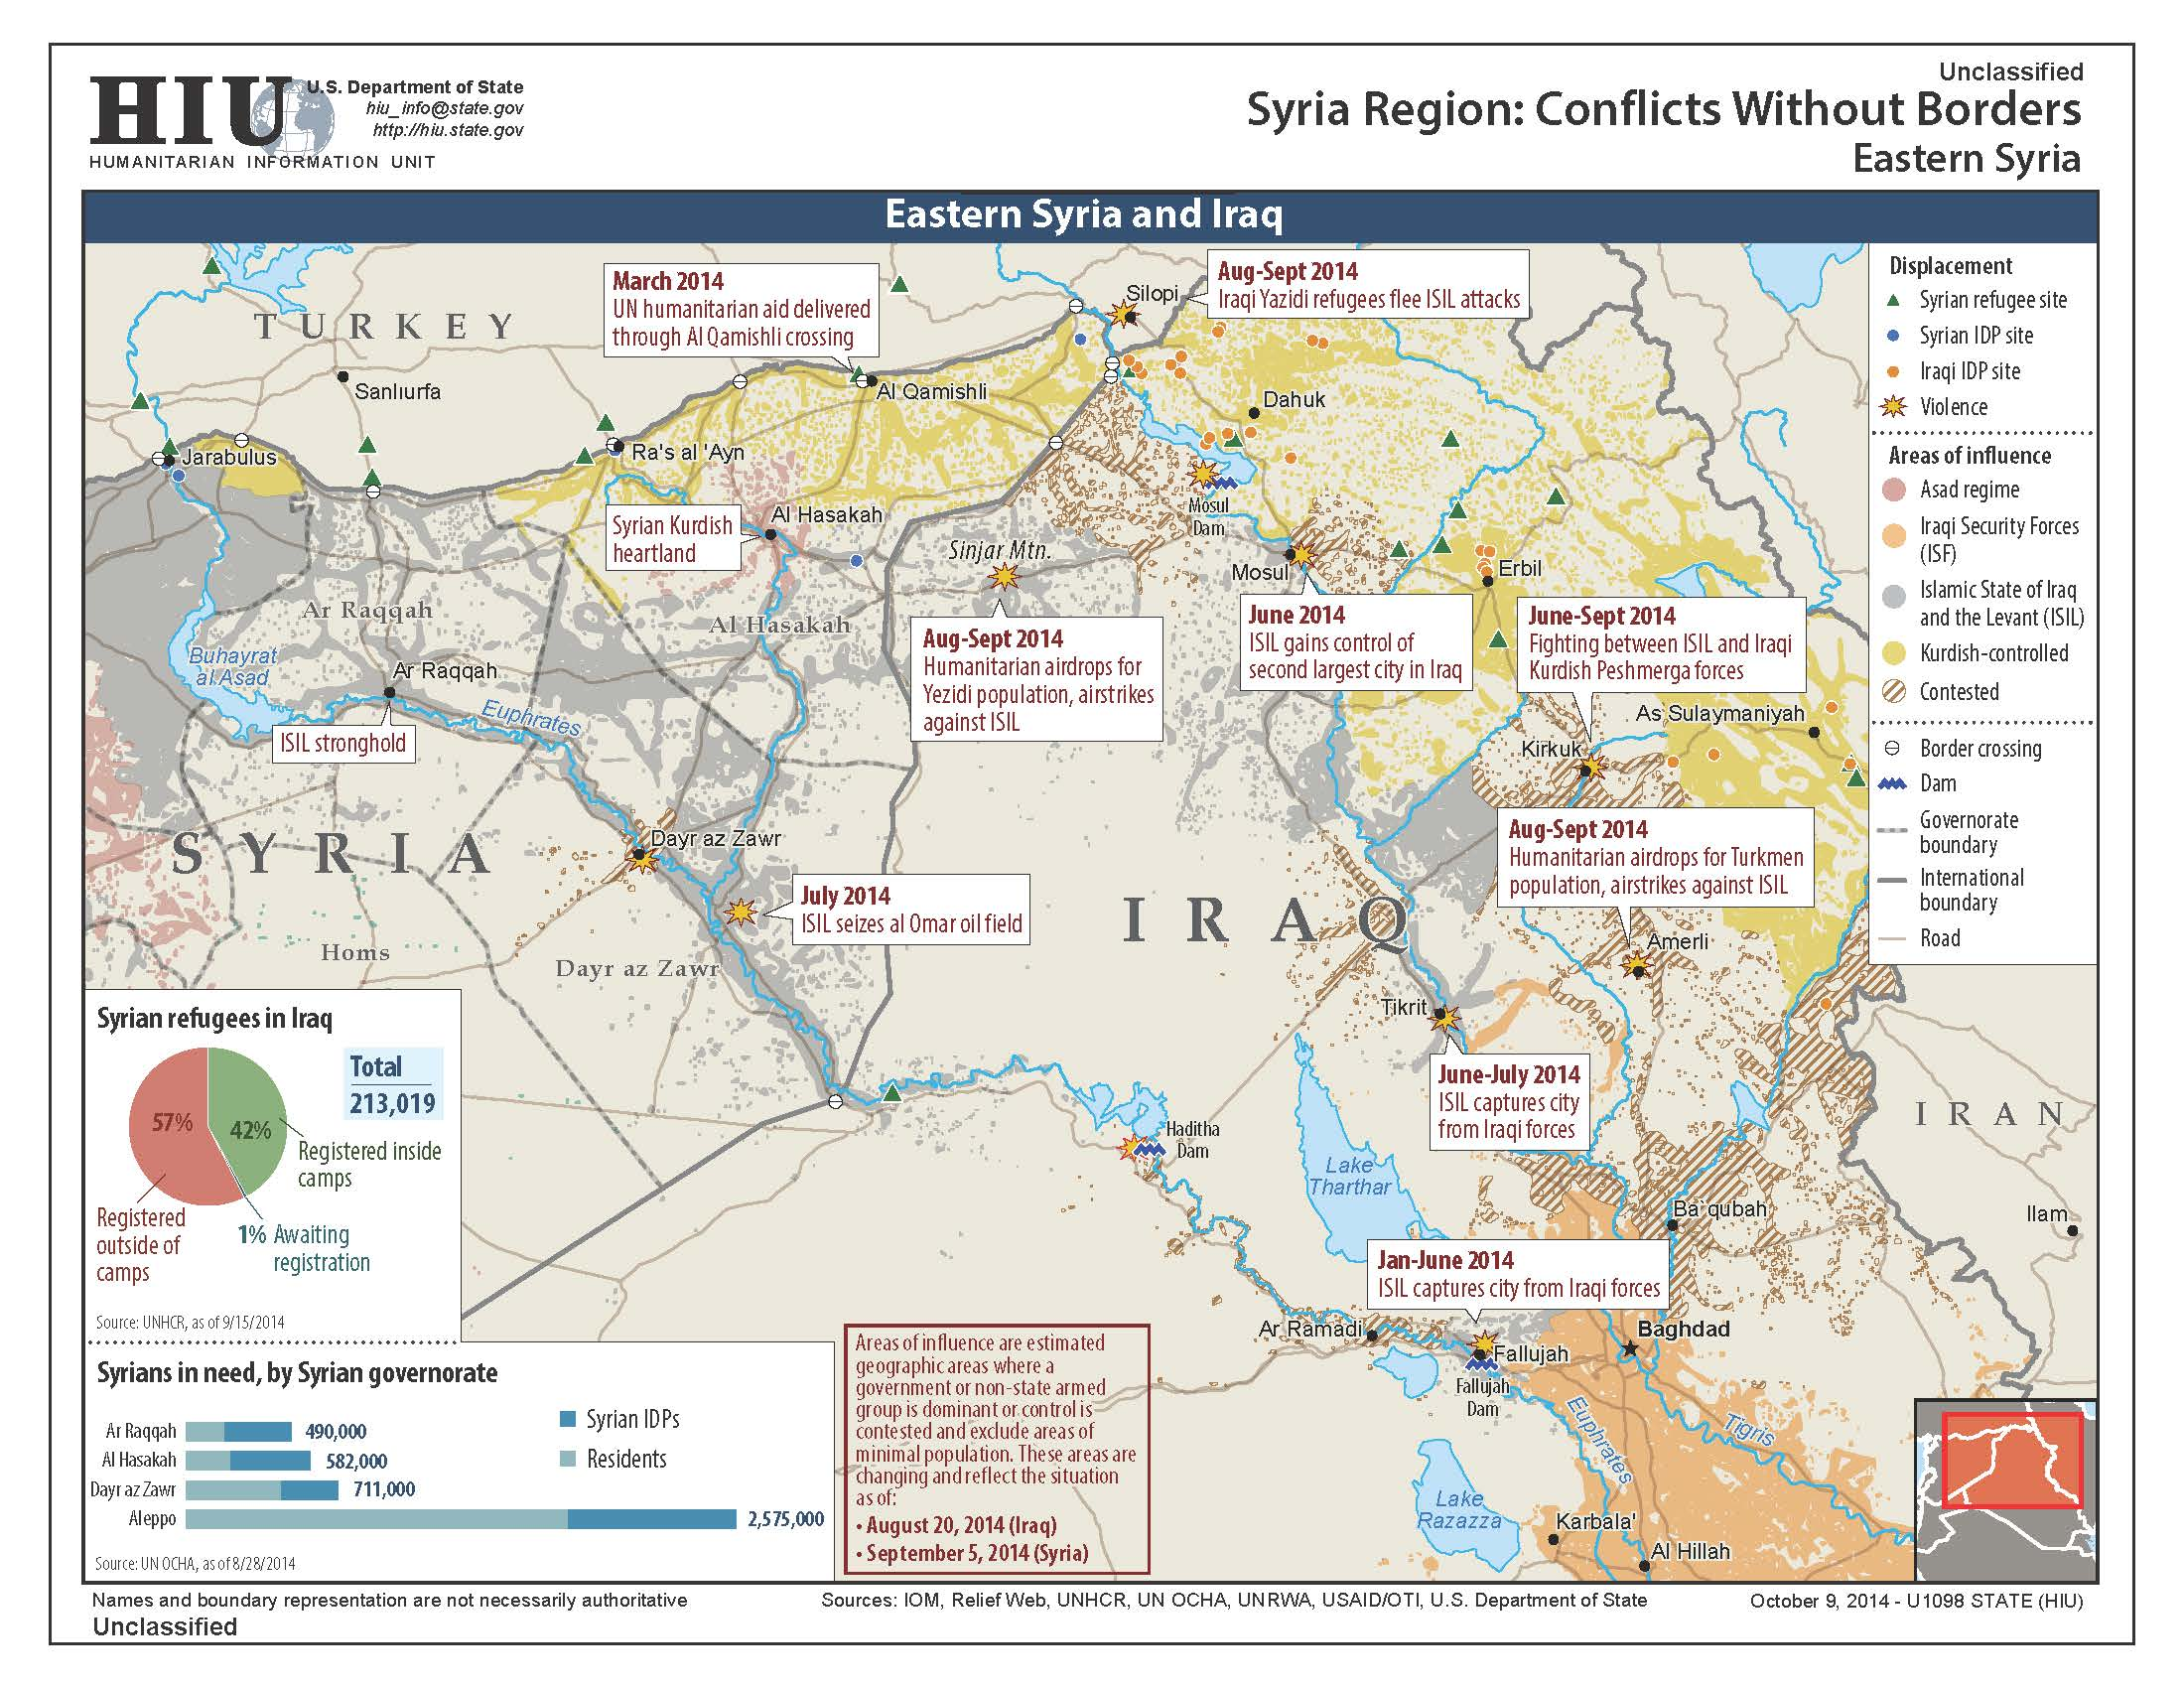 Us state department iraq syria conflict without borders map october dos syria isilpage5 gumiabroncs Gallery